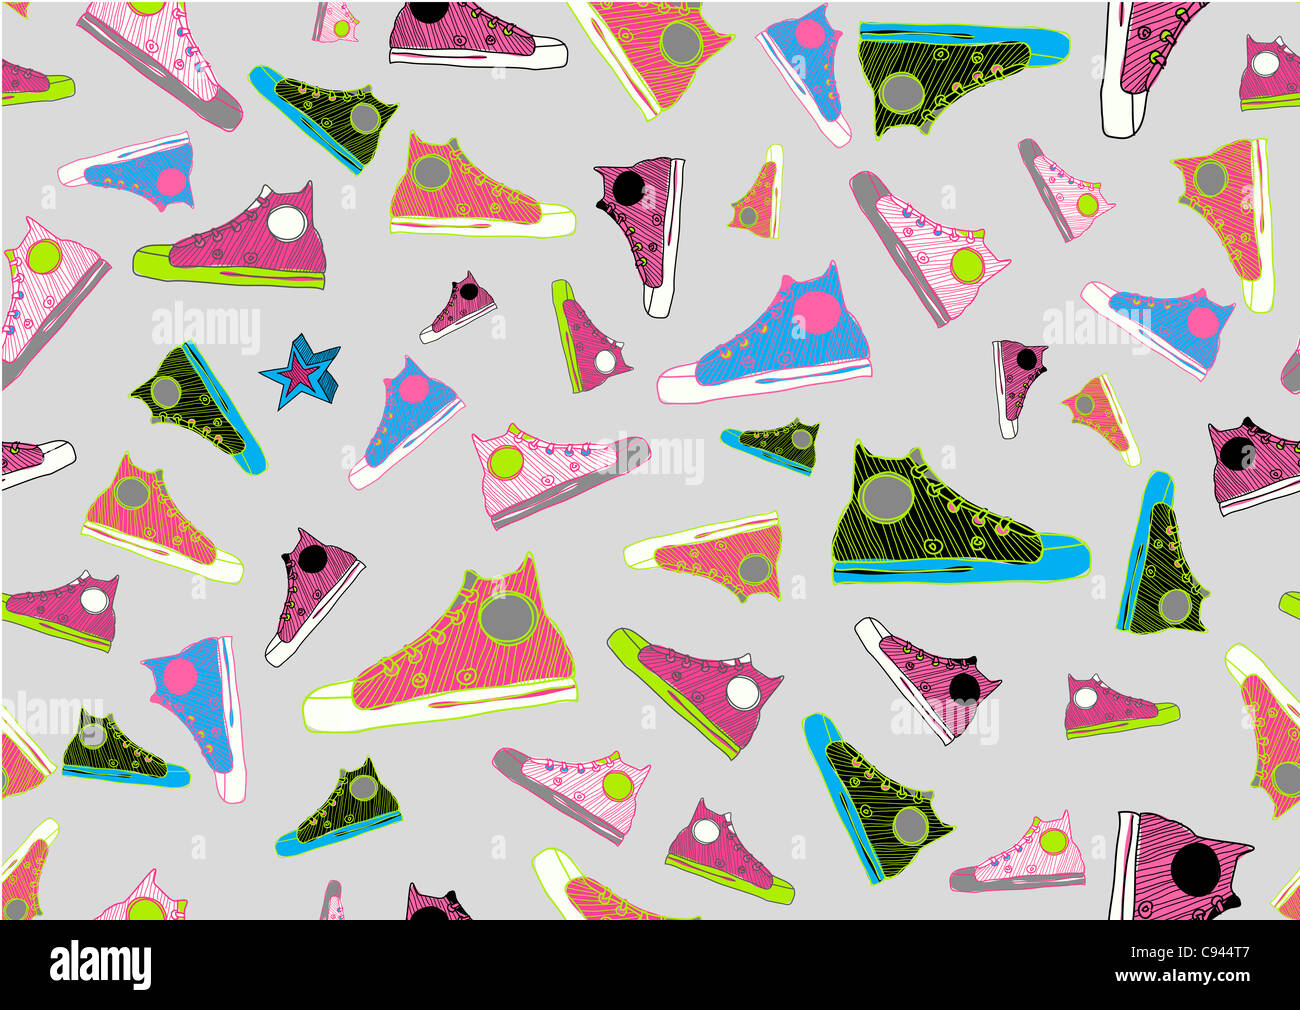 Retro Seamless Pattern made of cool hand-drawn sport shoes in different colors. - Stock Image